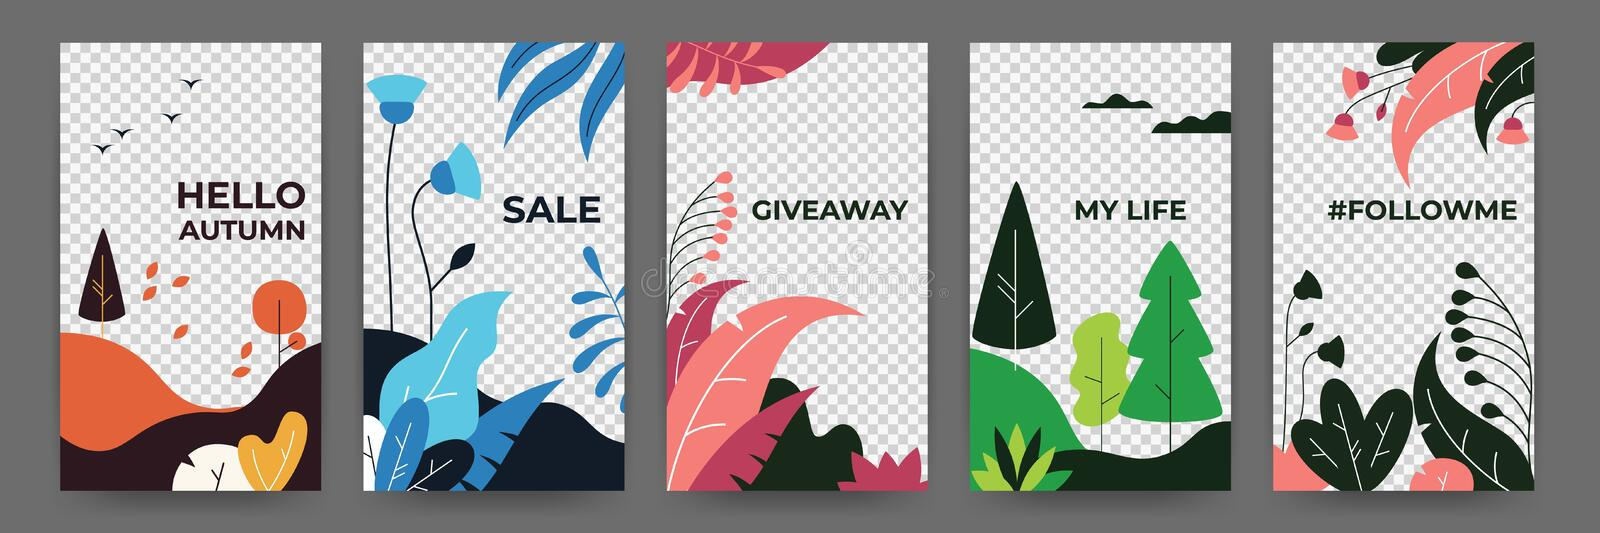 Social media flat plant posters. Abstract vibrant stories floral frames template. Vector illustration magical landscape royalty free illustration